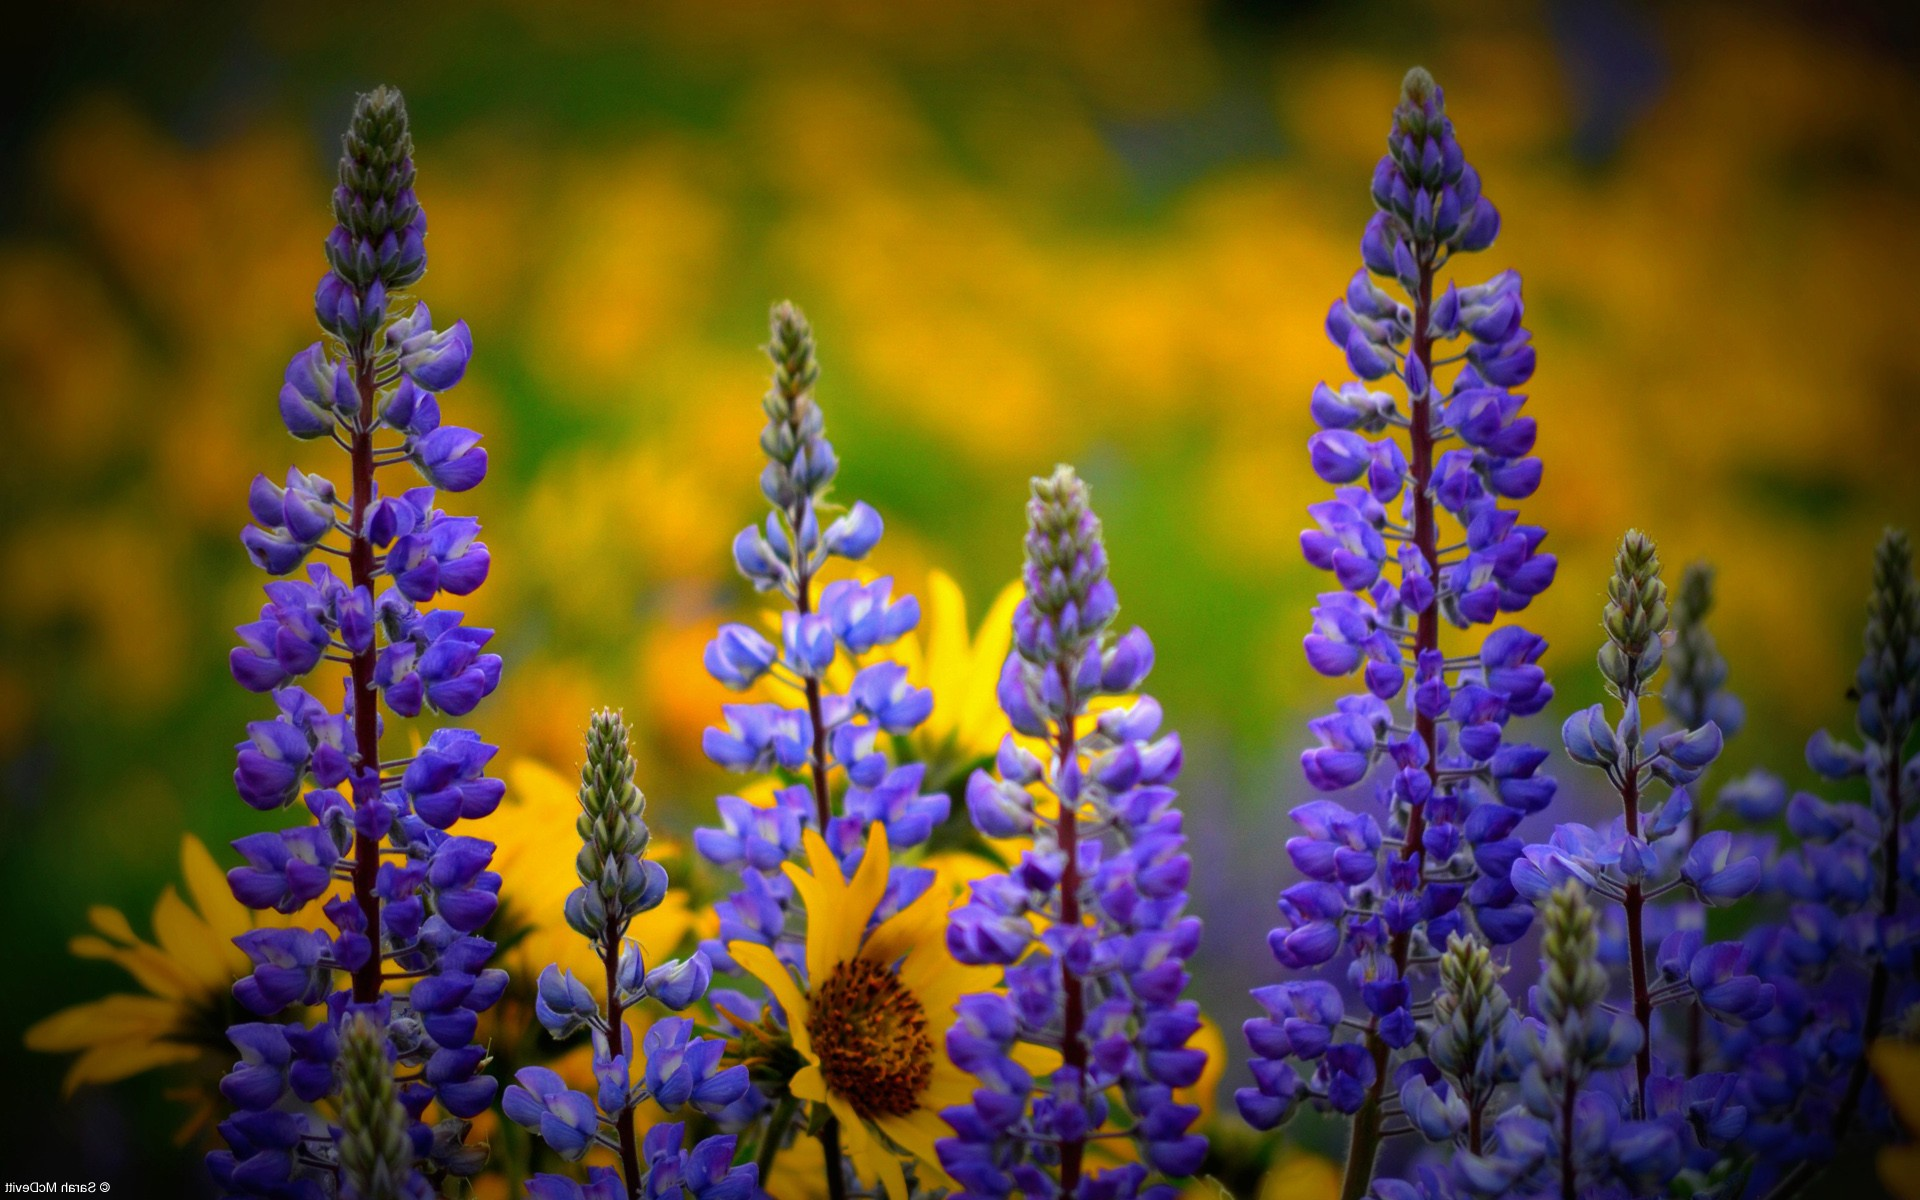 Wild Animals 3d Wallpapers Washington Wild Flowers Hd Flowers 4k Wallpapers Images